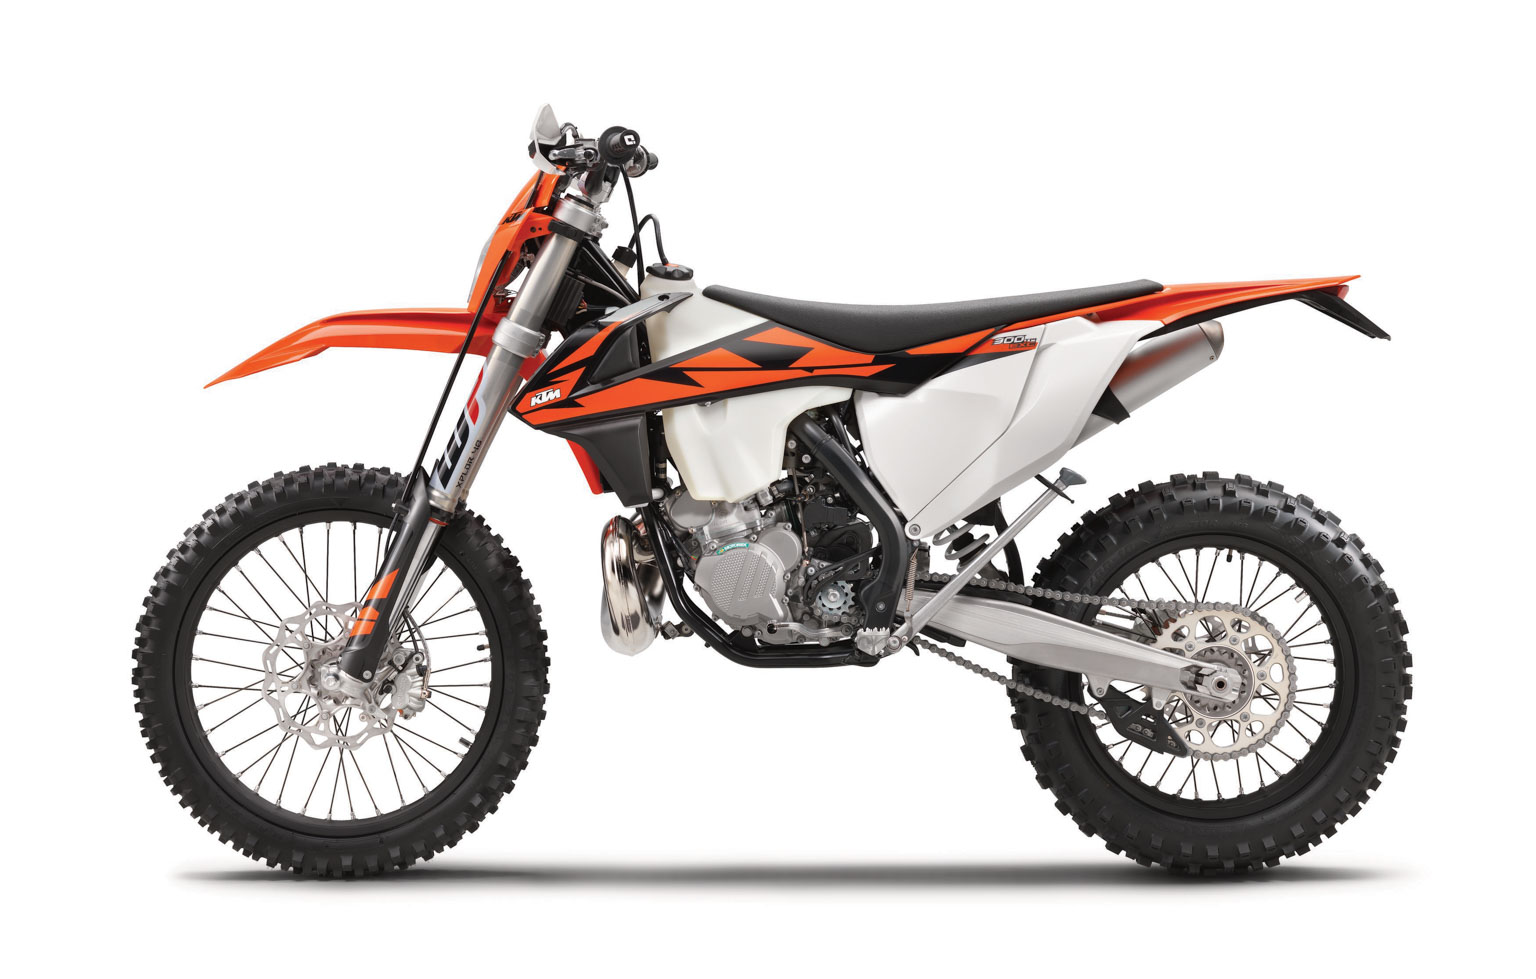 New 300 enduro weapon